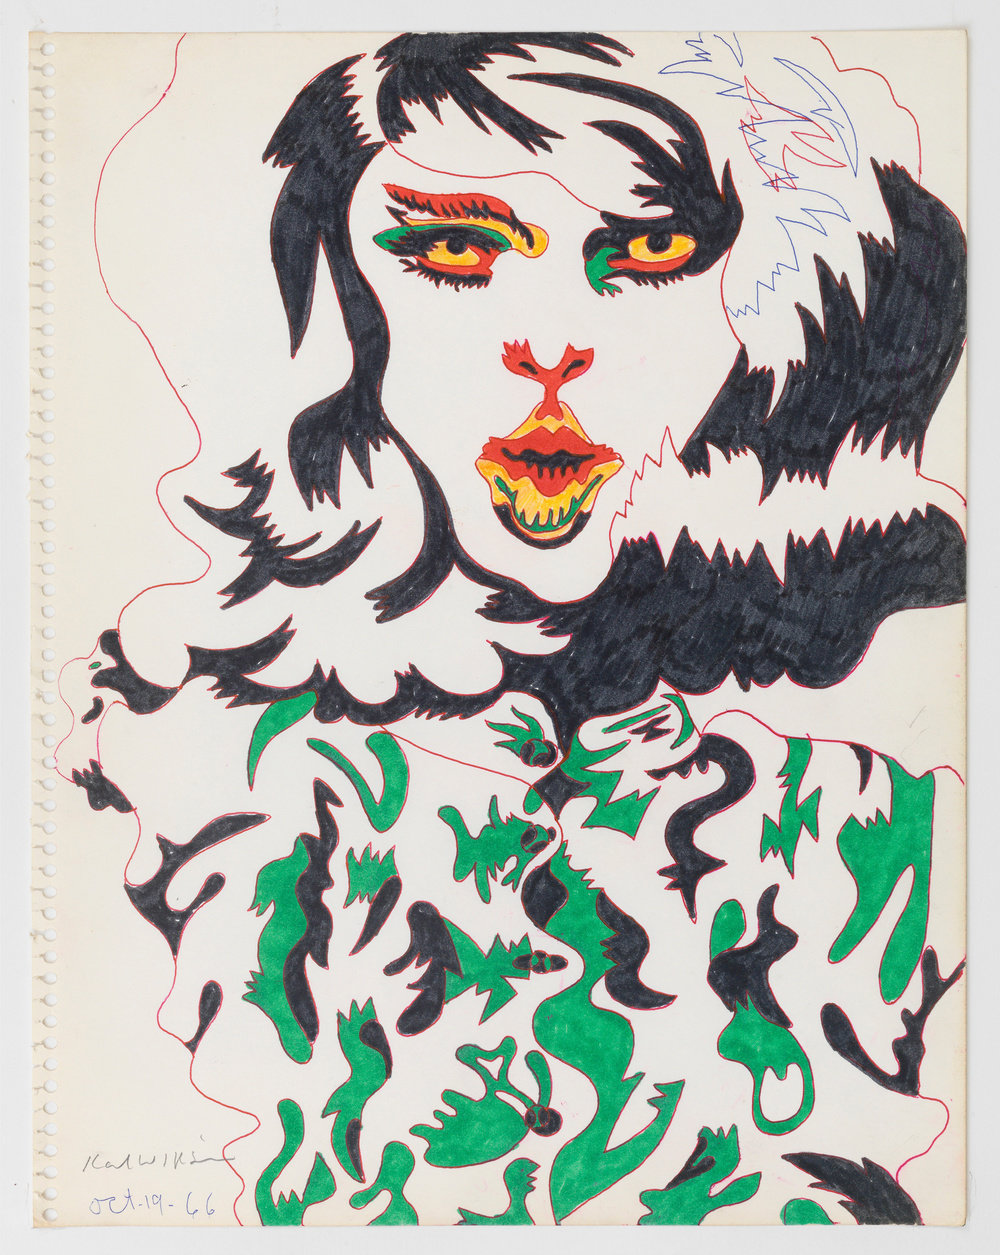 A color ink on paper portrait of a long-haired figure by Karl Wirsum wearing a green and black patterned garment with multicolored eyes and mouth.